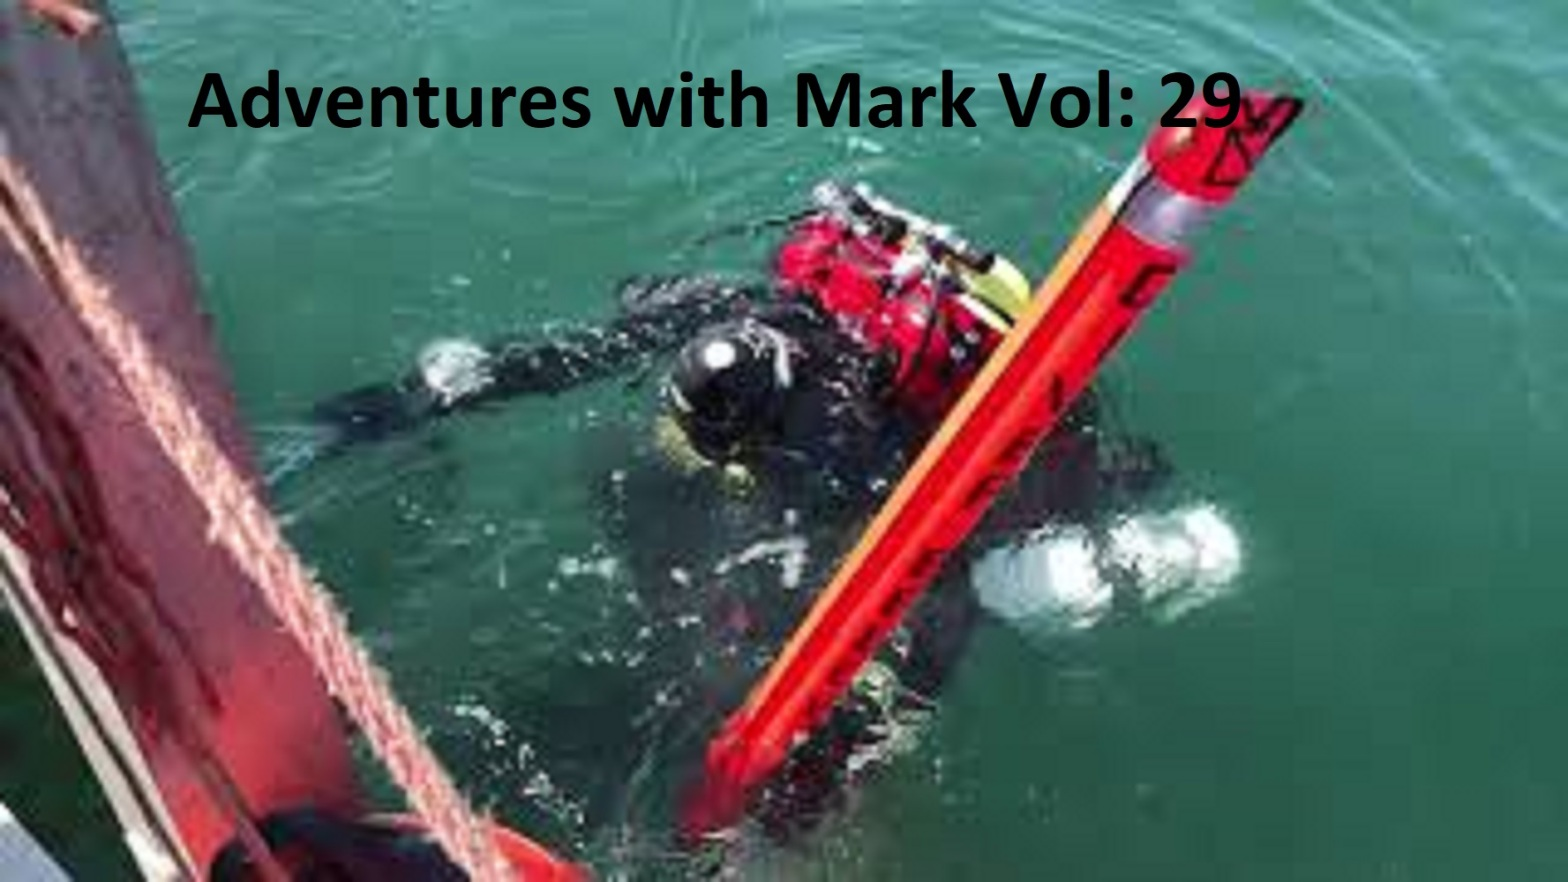 Scuba Diving West Wales ¦ First Aid Training ¦ Family Holidays ¦ Adventures with Mark Vol 29